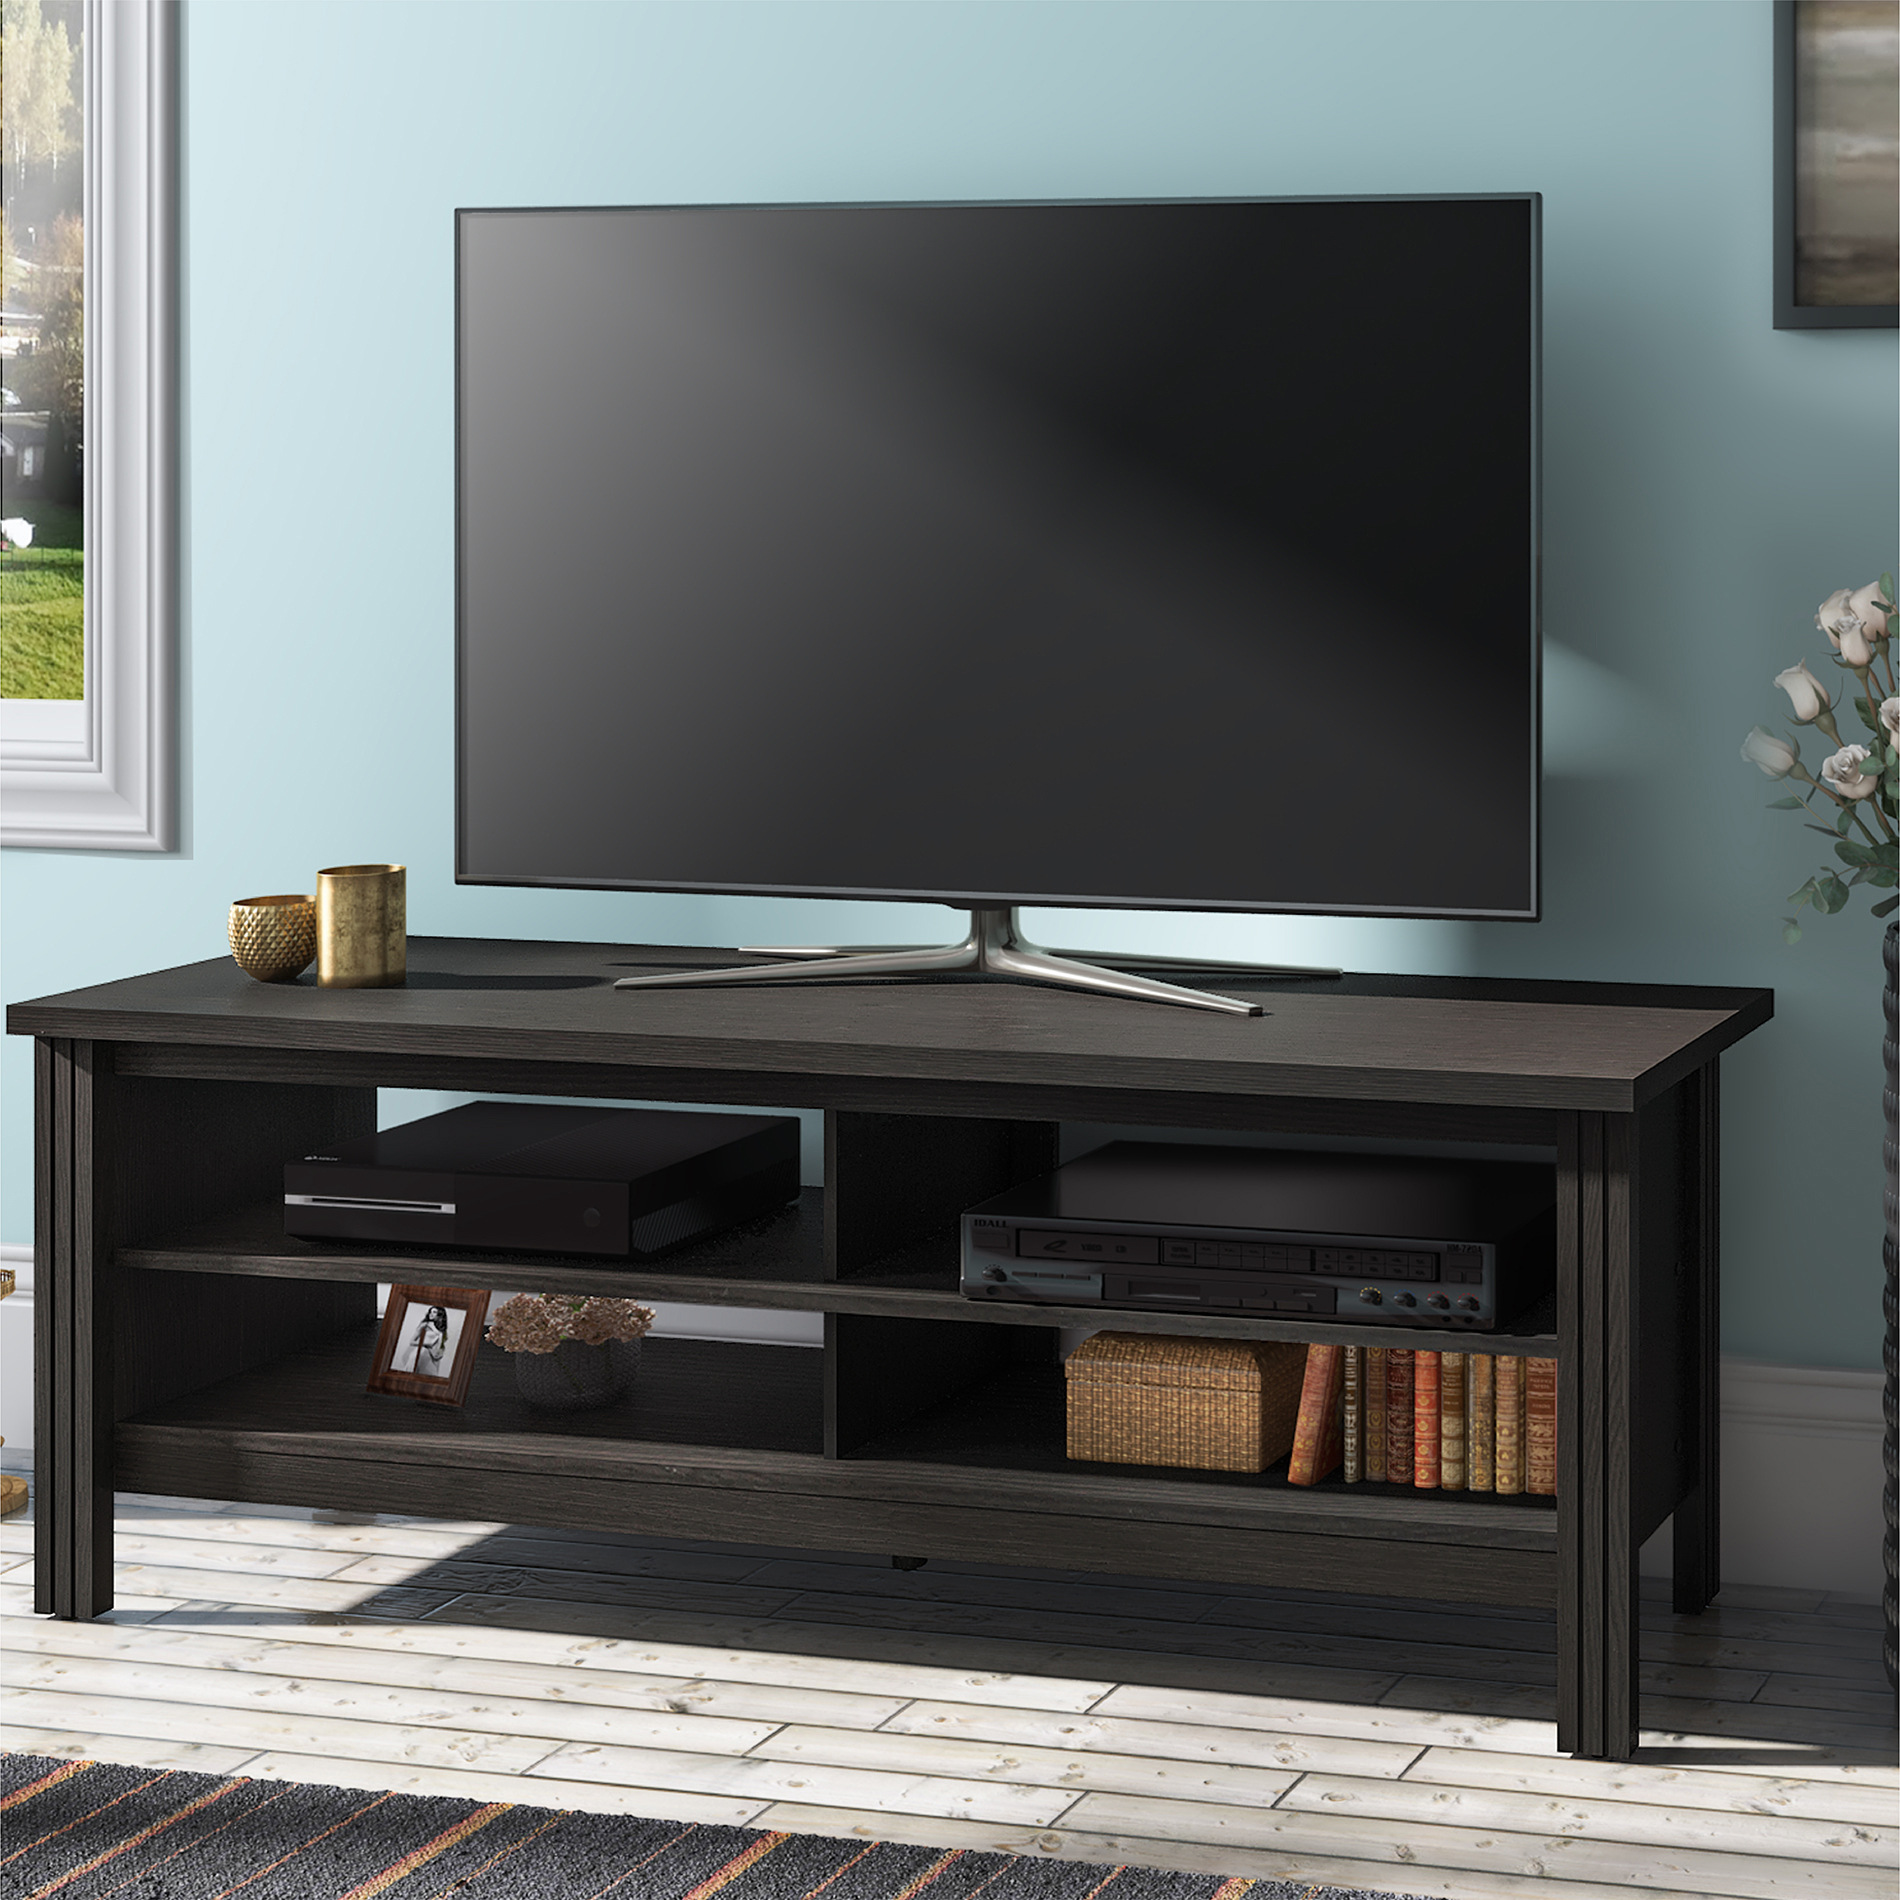 Wampat Farmhouse Wood TV Stand for 65 inch Flat Screen,Black